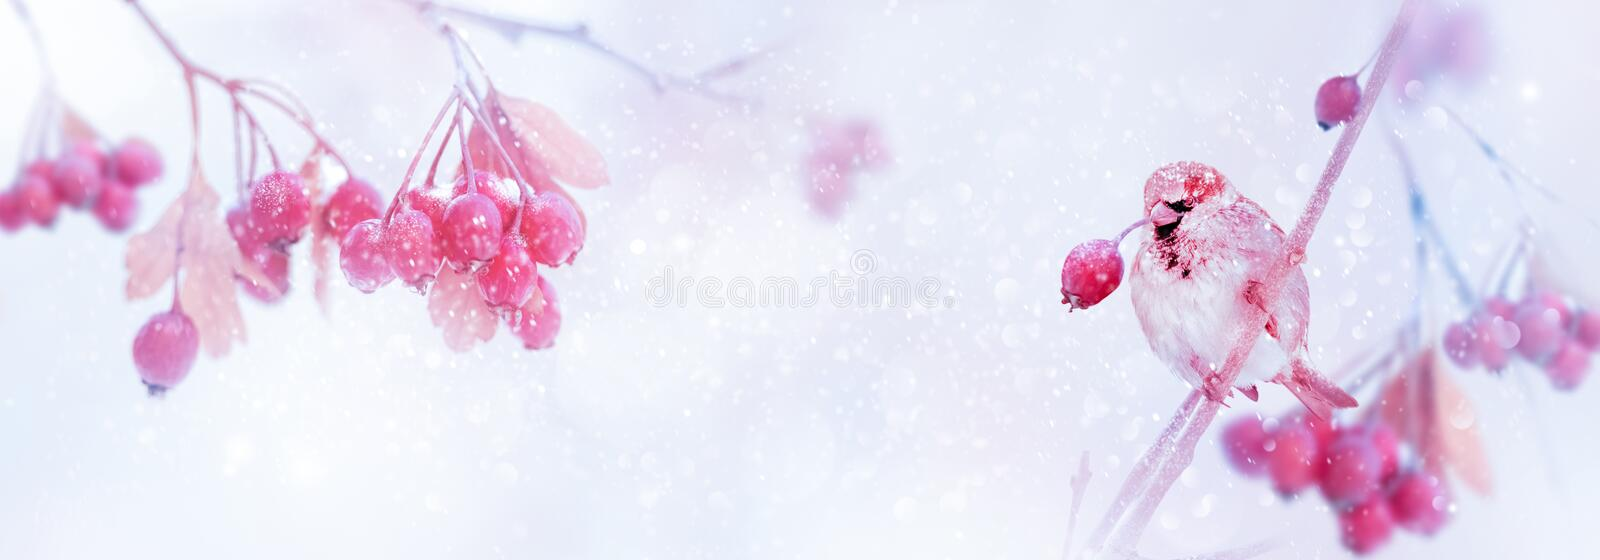 Winter tender magic forest tale. Pink and purple  bright berries and sparrow in a snowy park. Winter and autumn concept. Free space for text. Wide format stock image